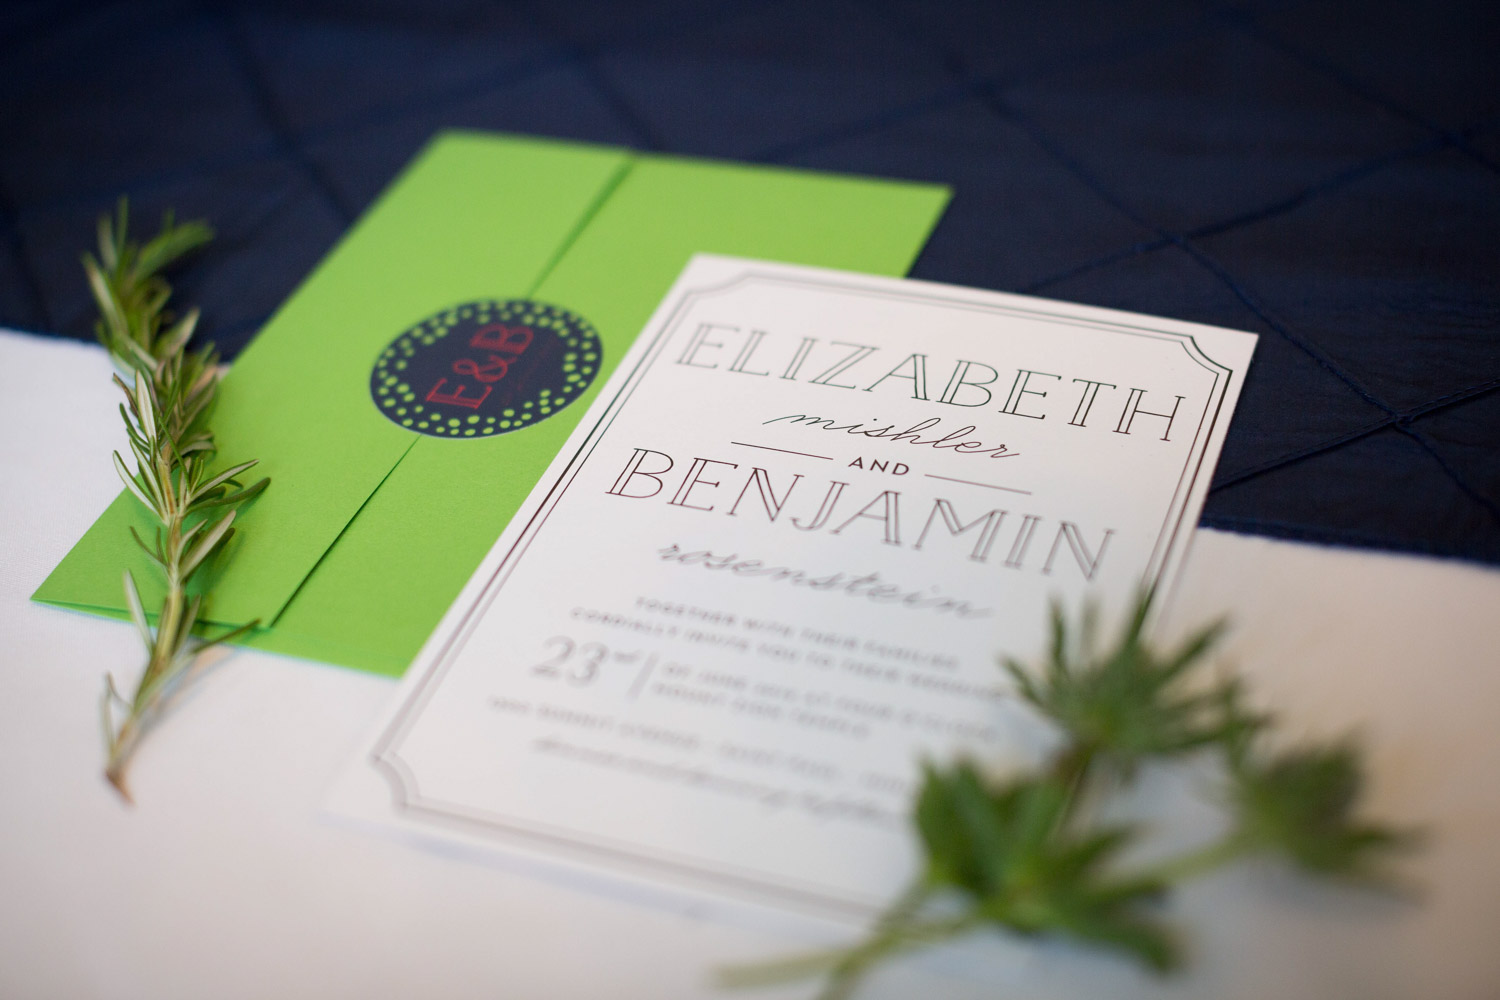 11-mount-zion-jewish-temple-wedding-day-details-invitation-suite-mahonen-photography.jpg